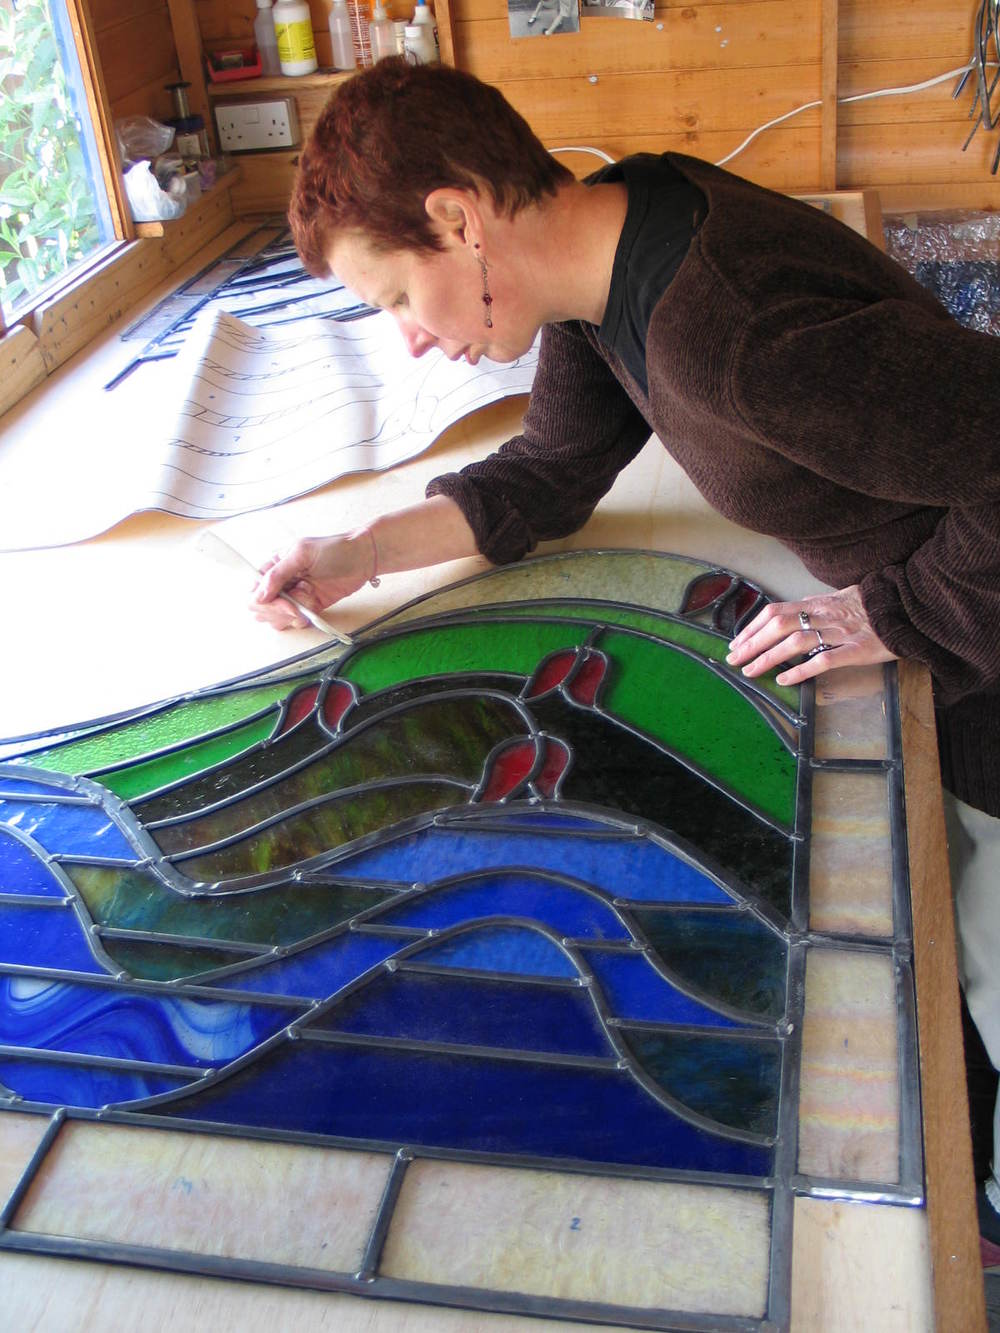 helen grierson working on glass commission